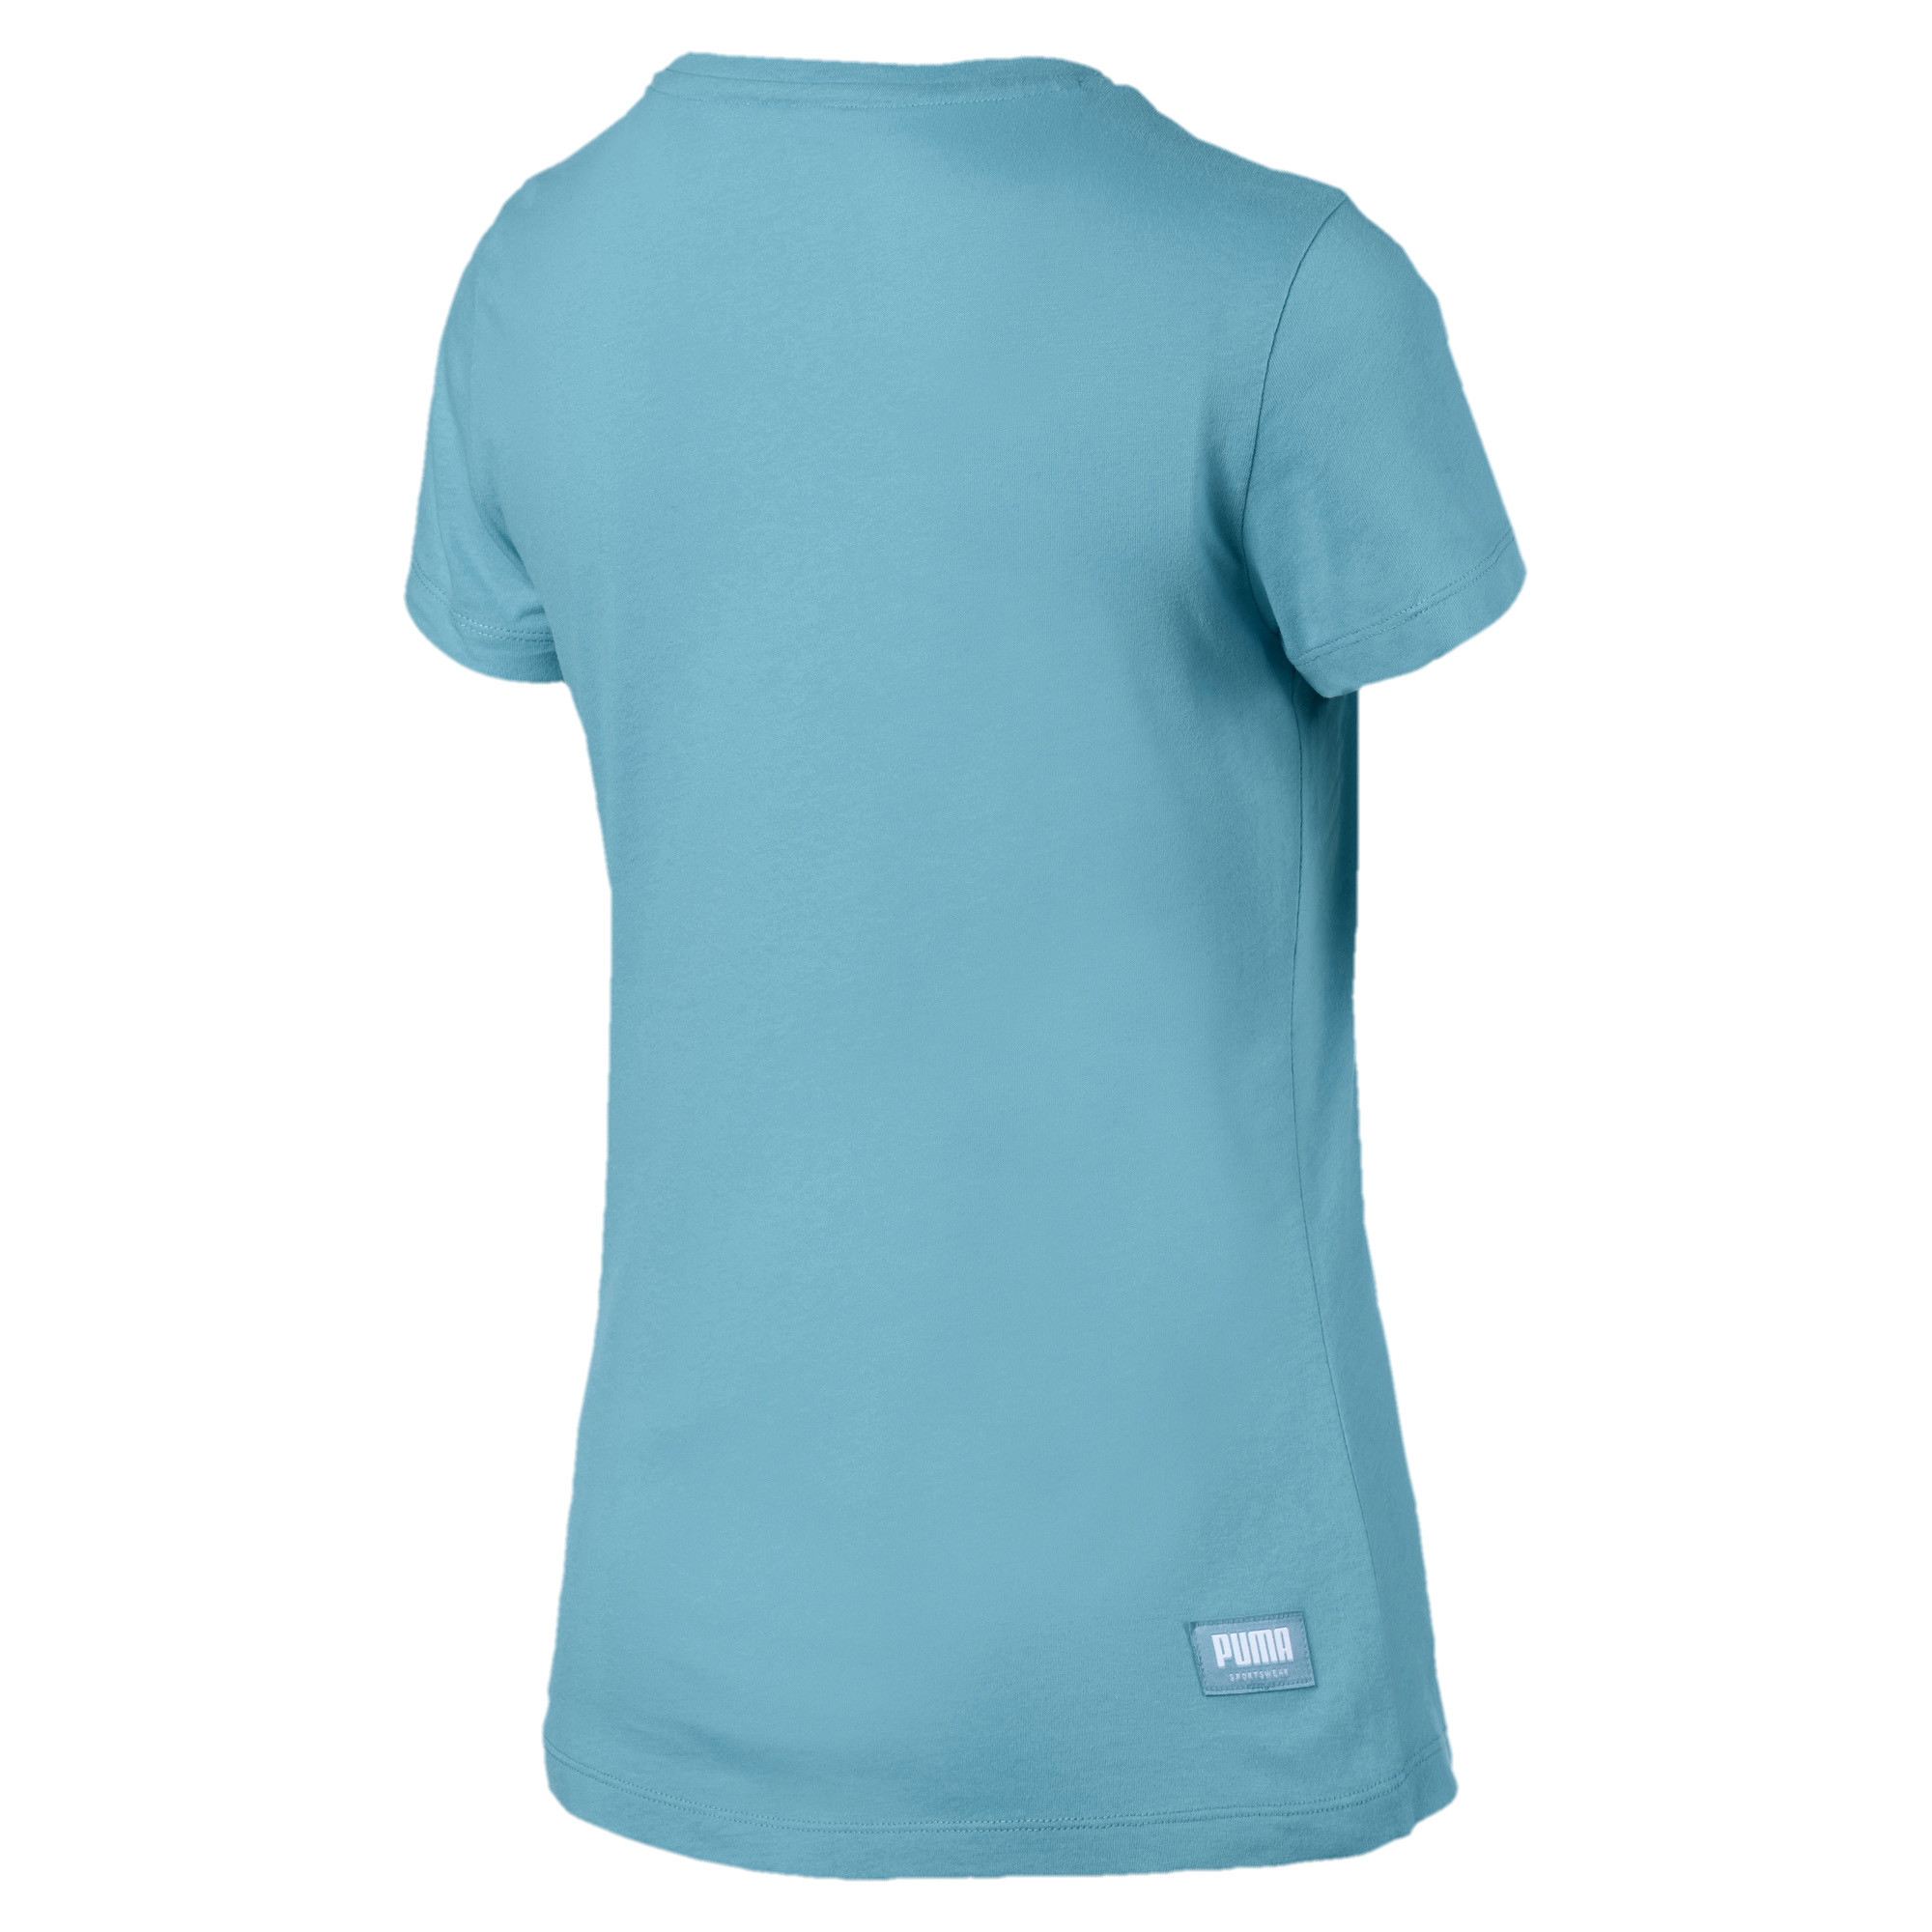 PUMA-Women-039-s-Athletics-Tee thumbnail 5